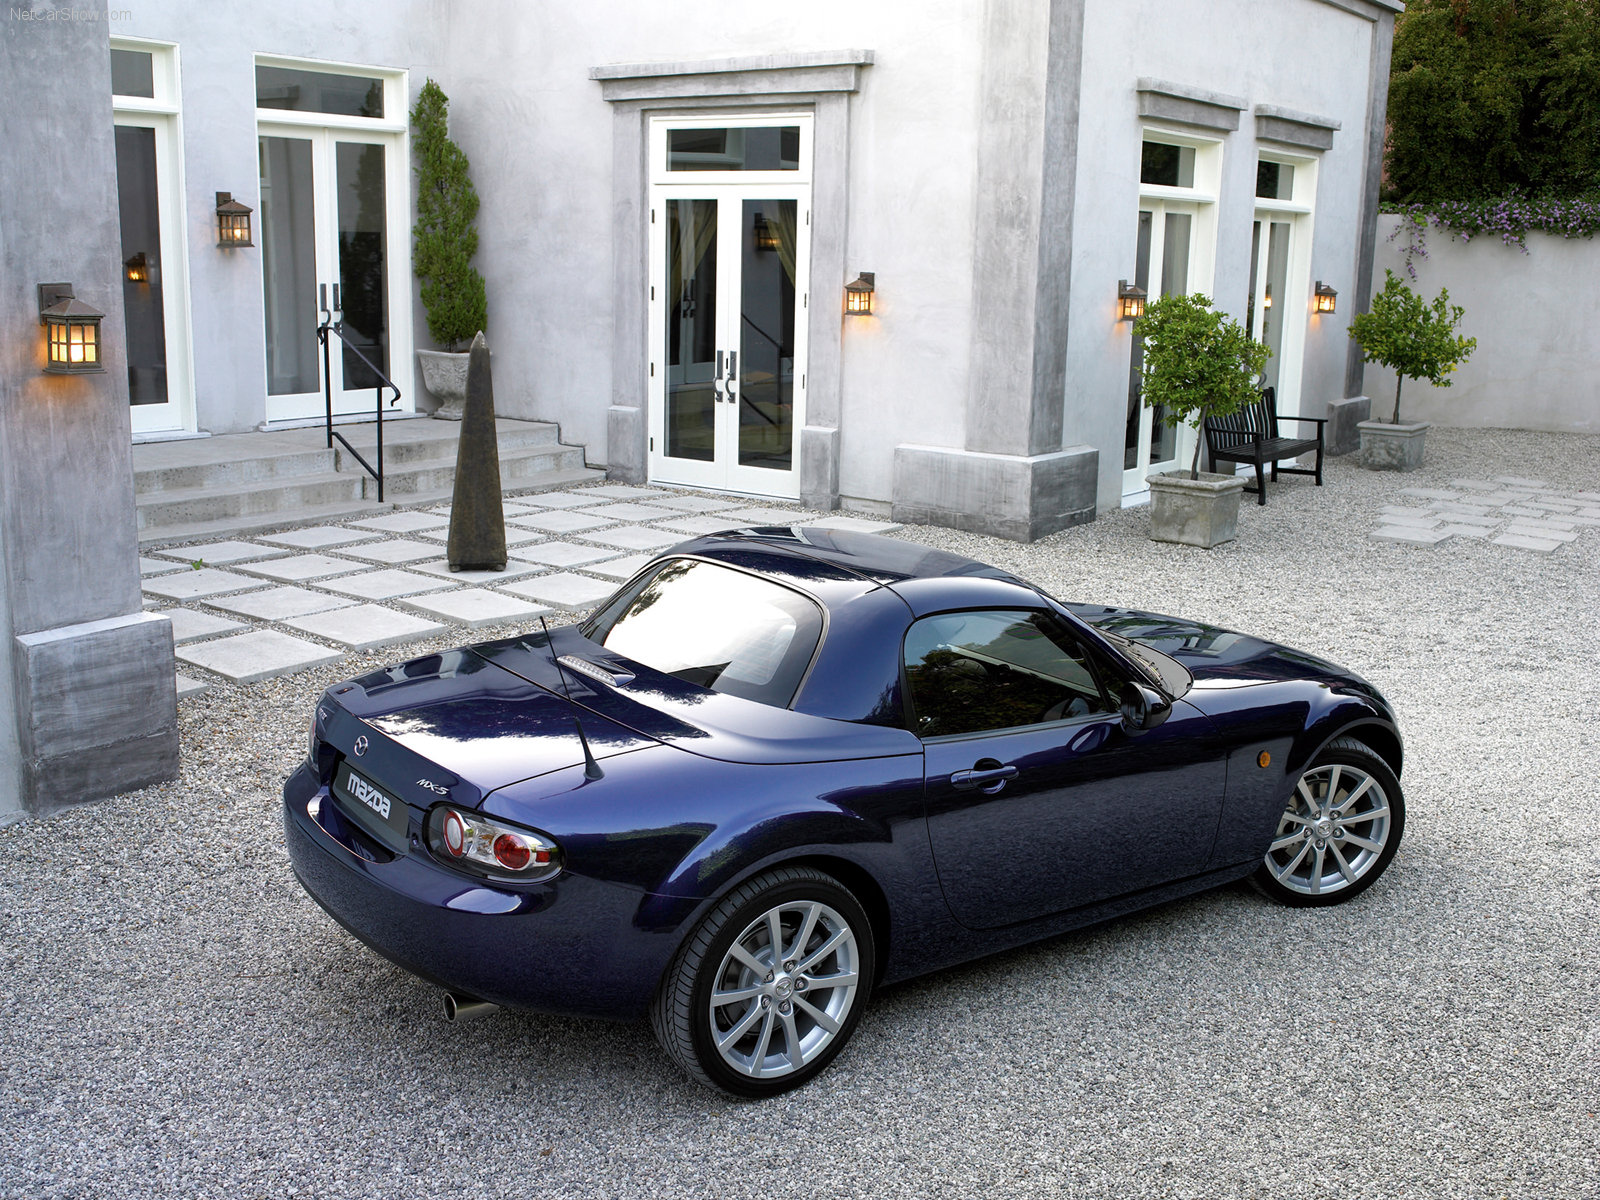 Mazda MX-5 Coupe 2005